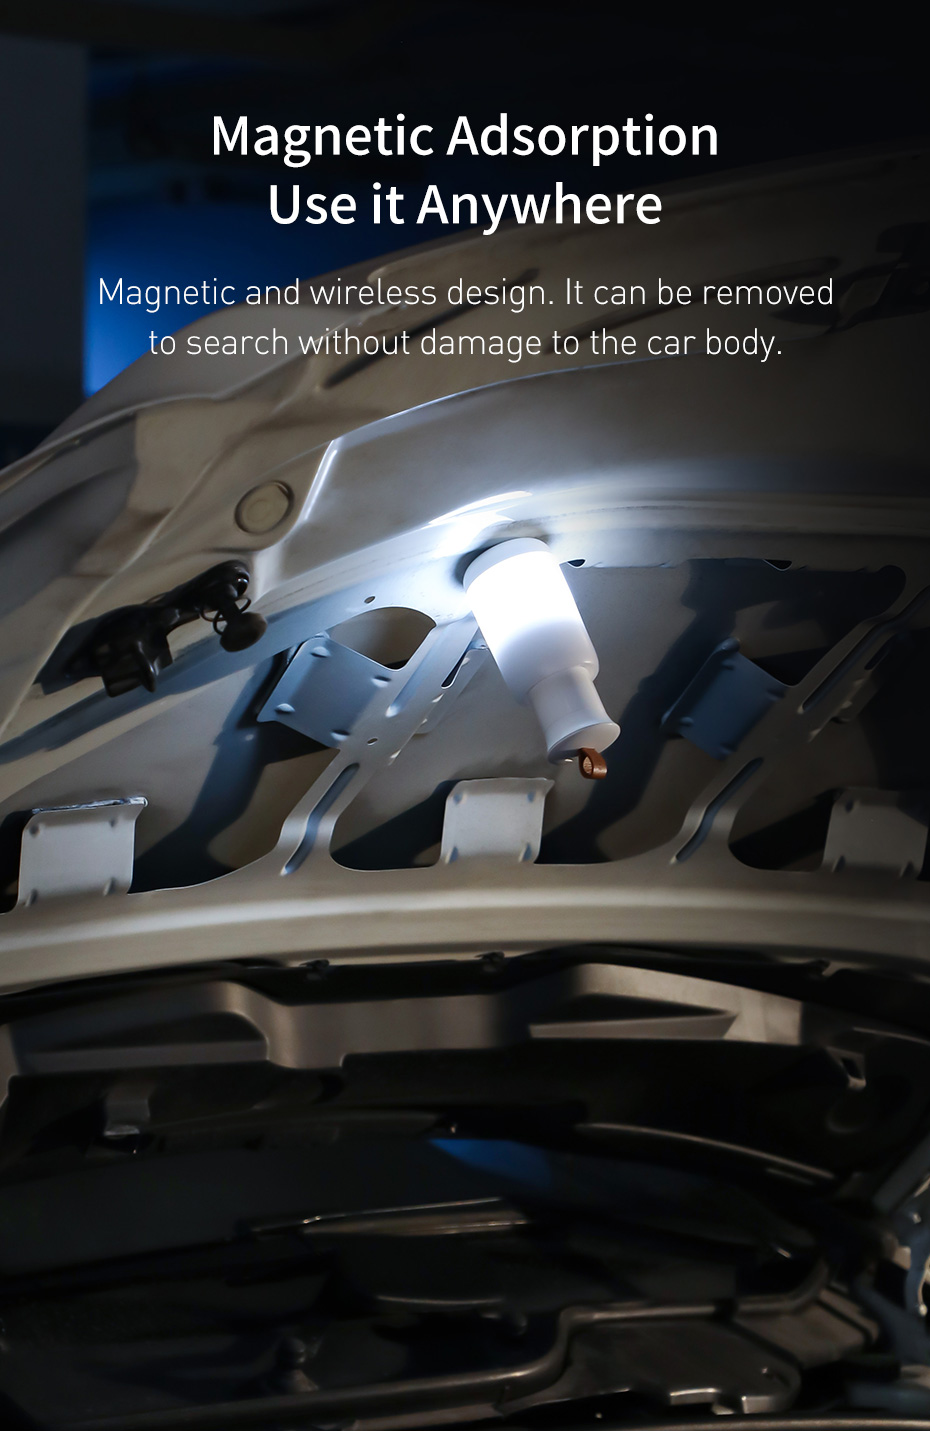 Baseus CRYJD01-A02 Starry Night Car Emergency Light Magnetic Adsorption, Use it Anywhere